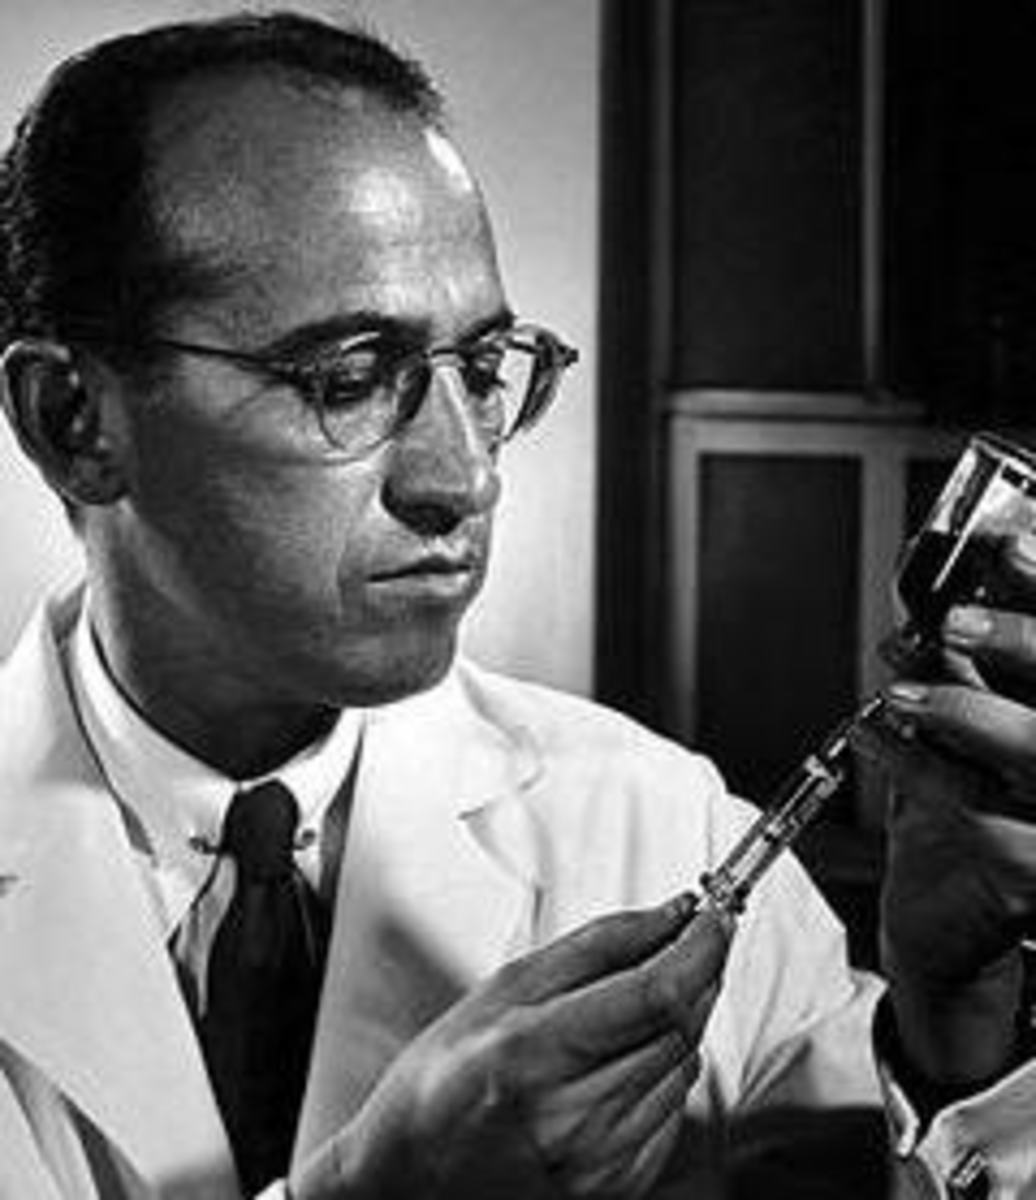 a biography of jonas salk the discoverer of polio vaccine American microbiologist jonas salk was celebrated worldwide for developing the vaccine that ended the threat of the dreaded polio virus he discovered that a killed virus, or a virus made inactive with a formaldehyde solution, is capable of serving as an antigen, or an agent that prompts the body's immune system to produce antibodies that .